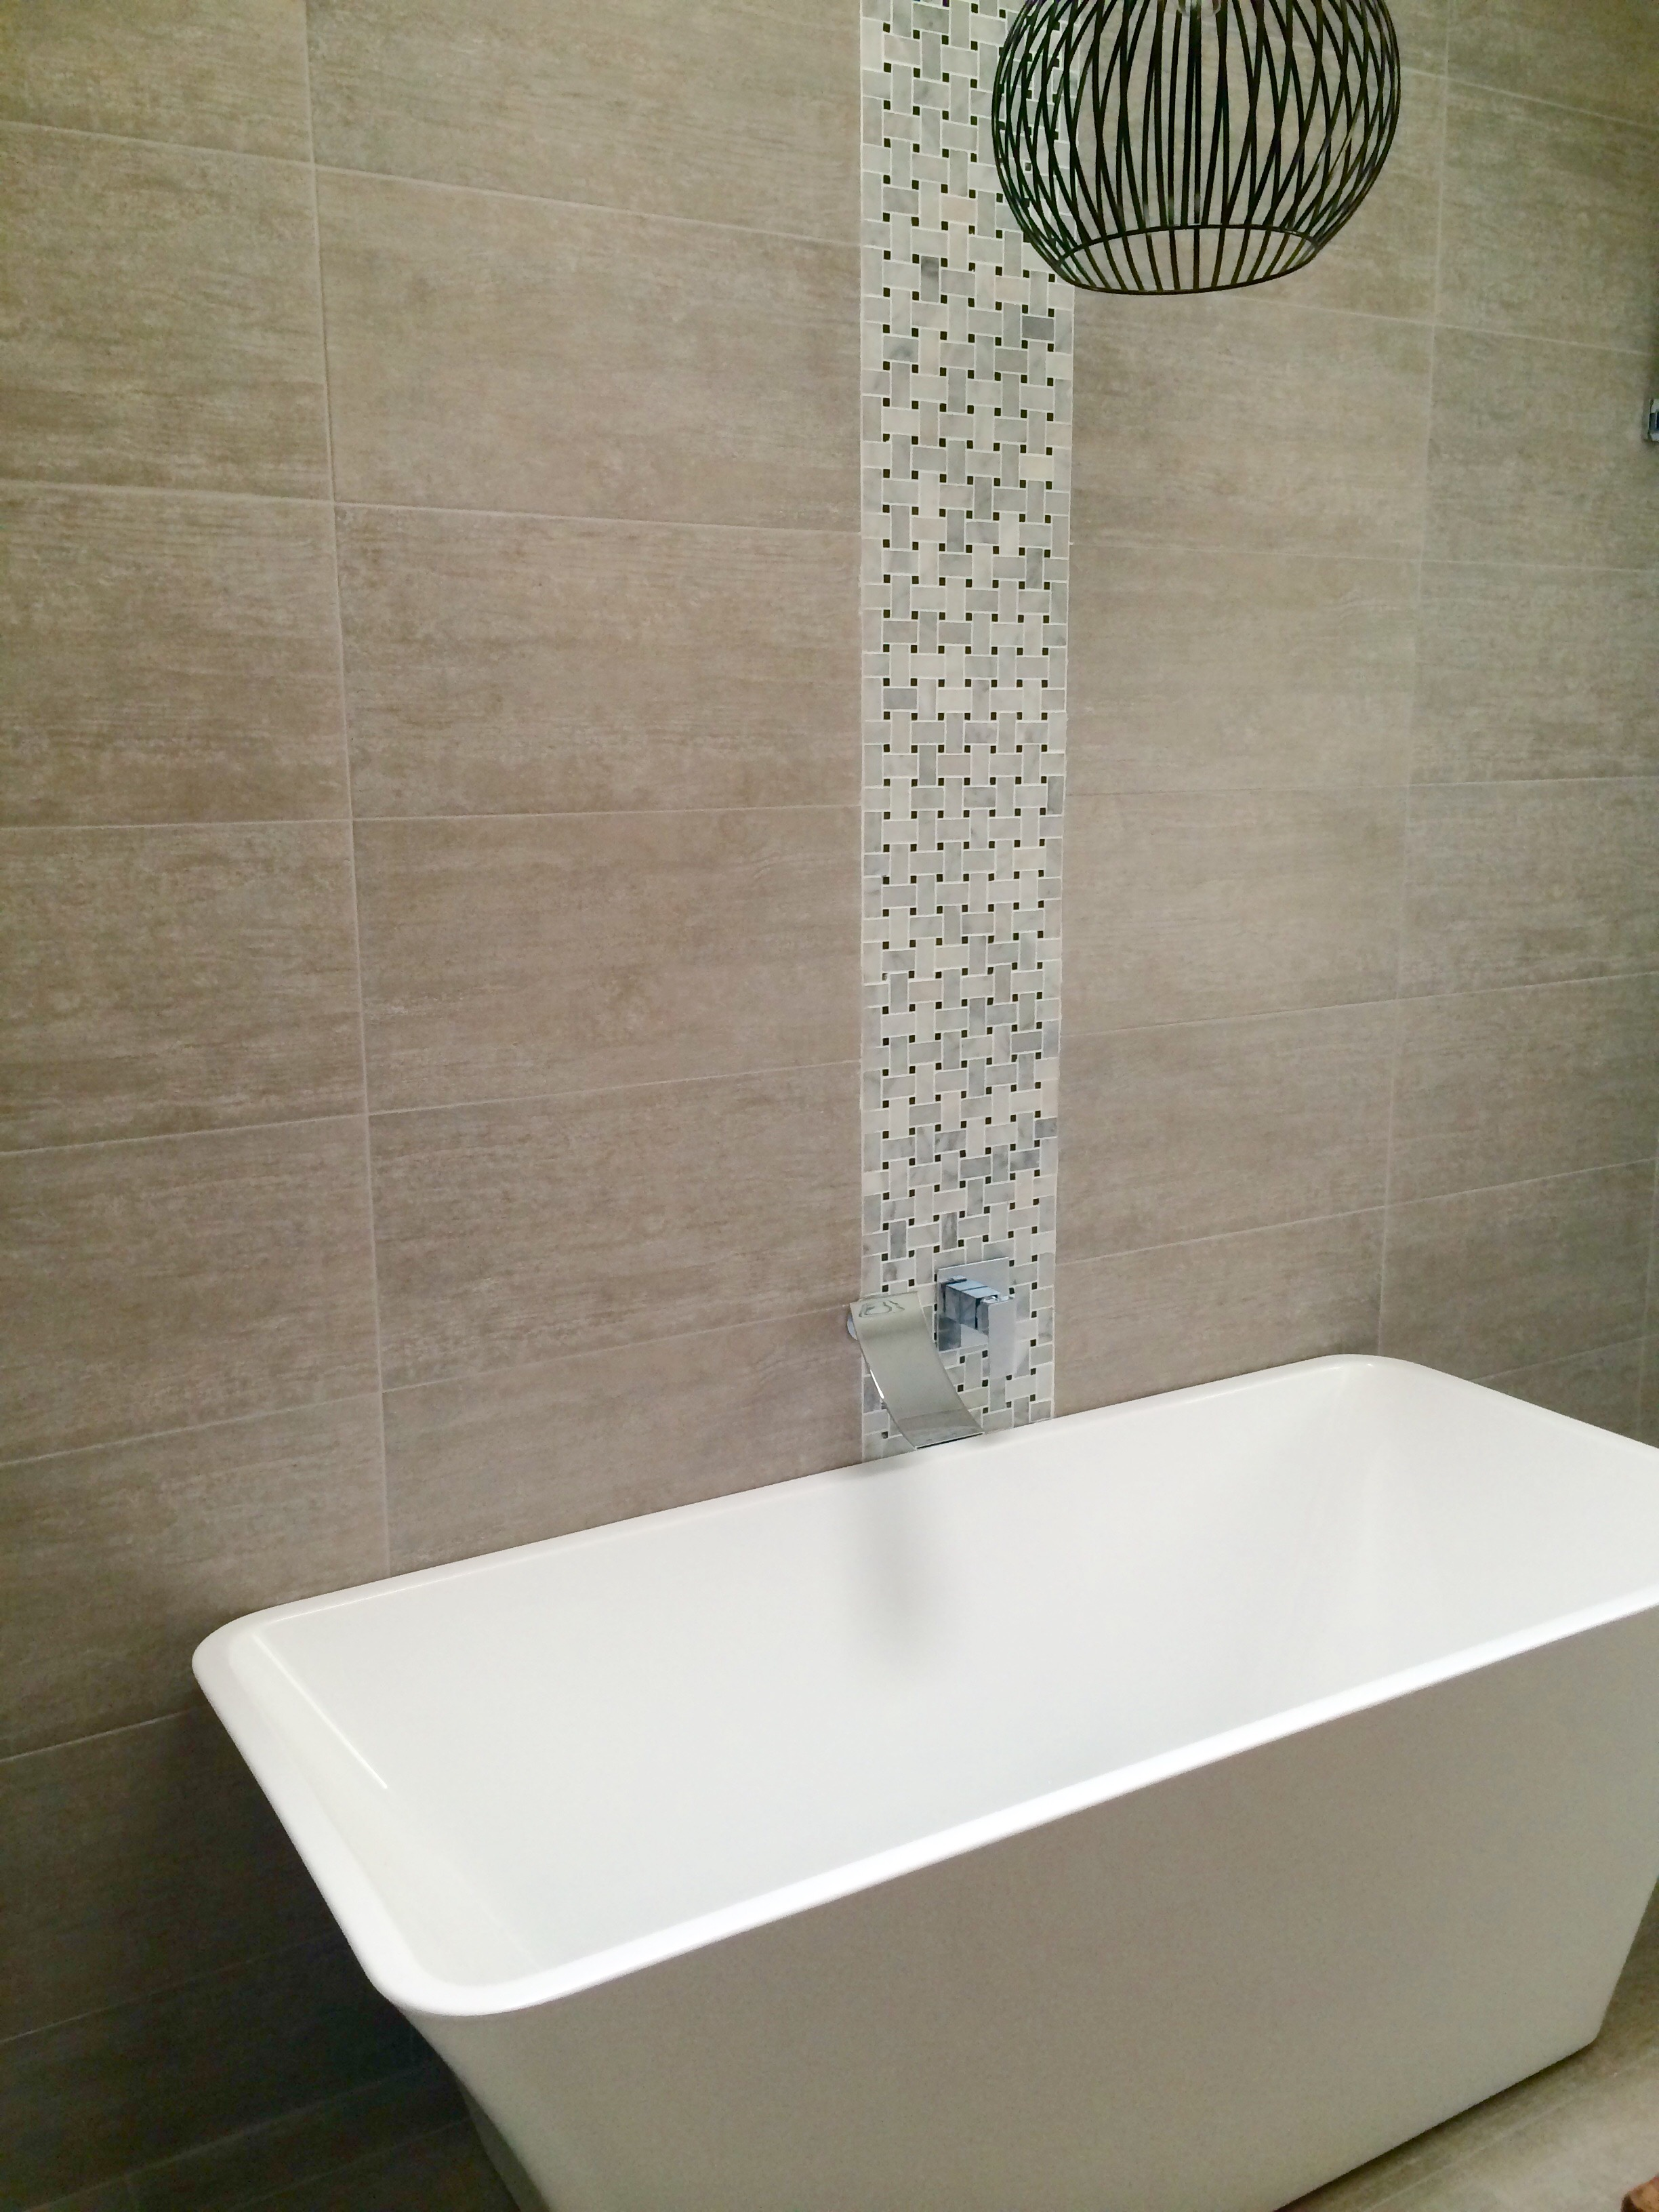 Bathroom renovations hornsby - How To Avoid Common Bathroom Renovation Mistakes